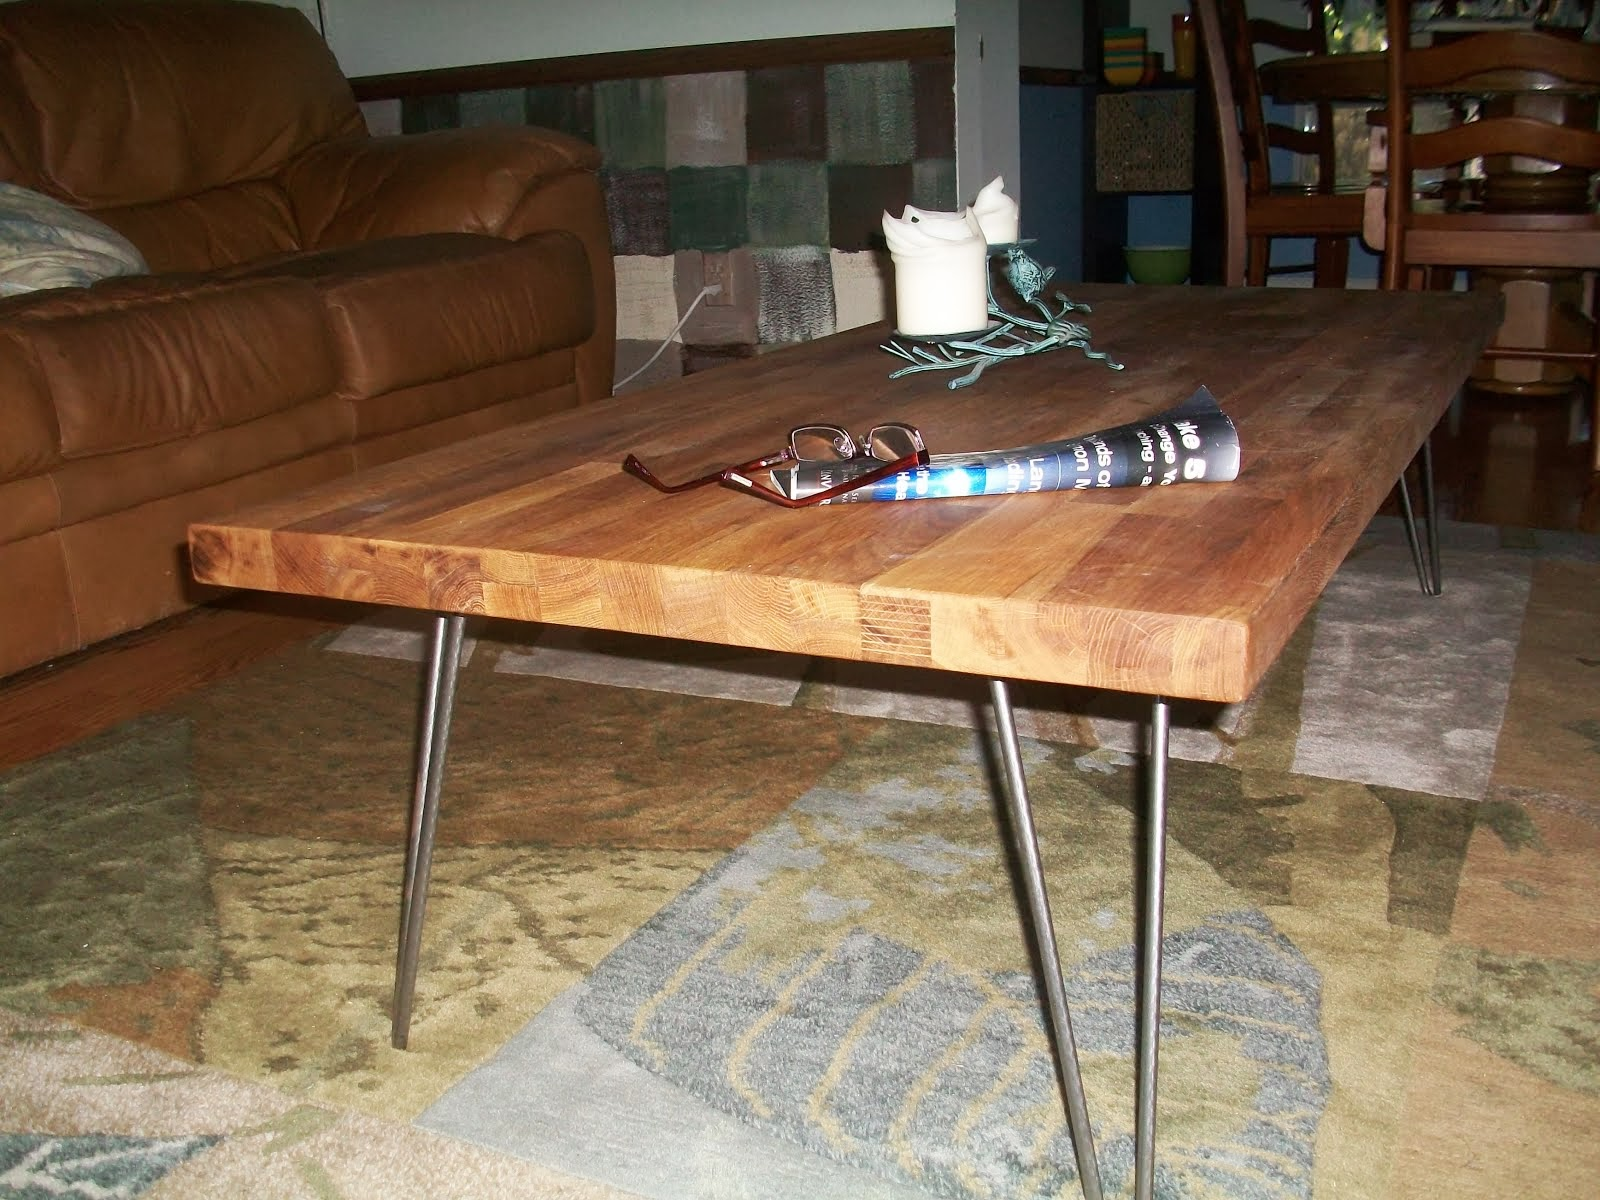 J N Taylor And Co Butcher Block Coffee Table And End Table By Jules Yap